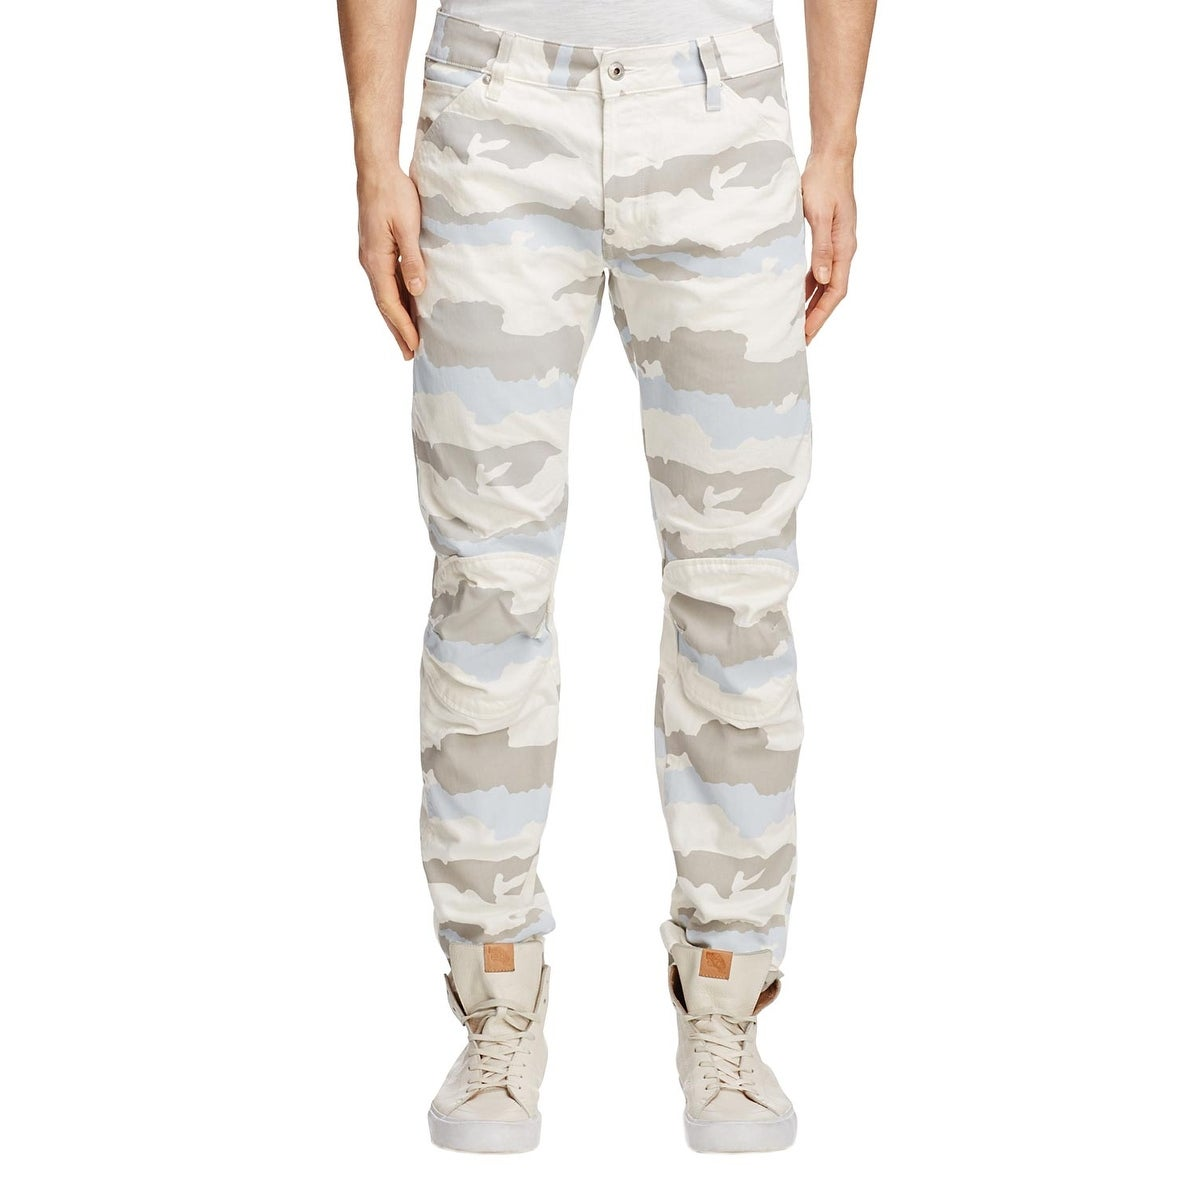 G Star Raw 5622 3D Moto Slim Jeans 34x32 in White Scatter Snow Camouflage Camo